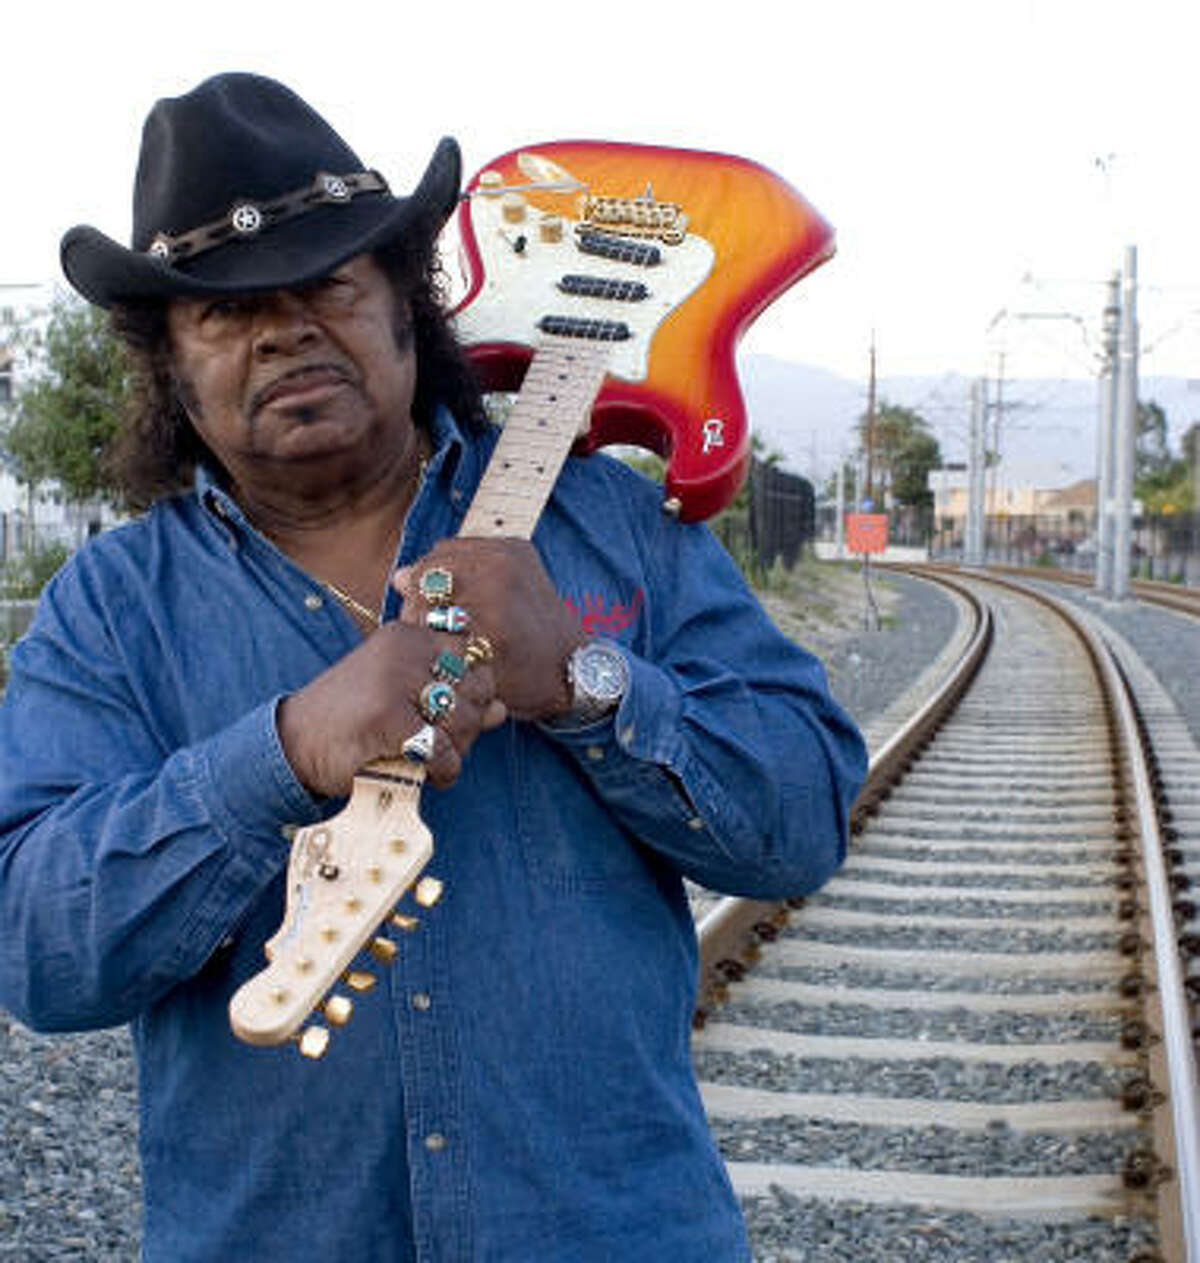 Guitar Shorty was born in Houston. Shorty is often credited as being an influence for his young friend Jimi Hendrix.